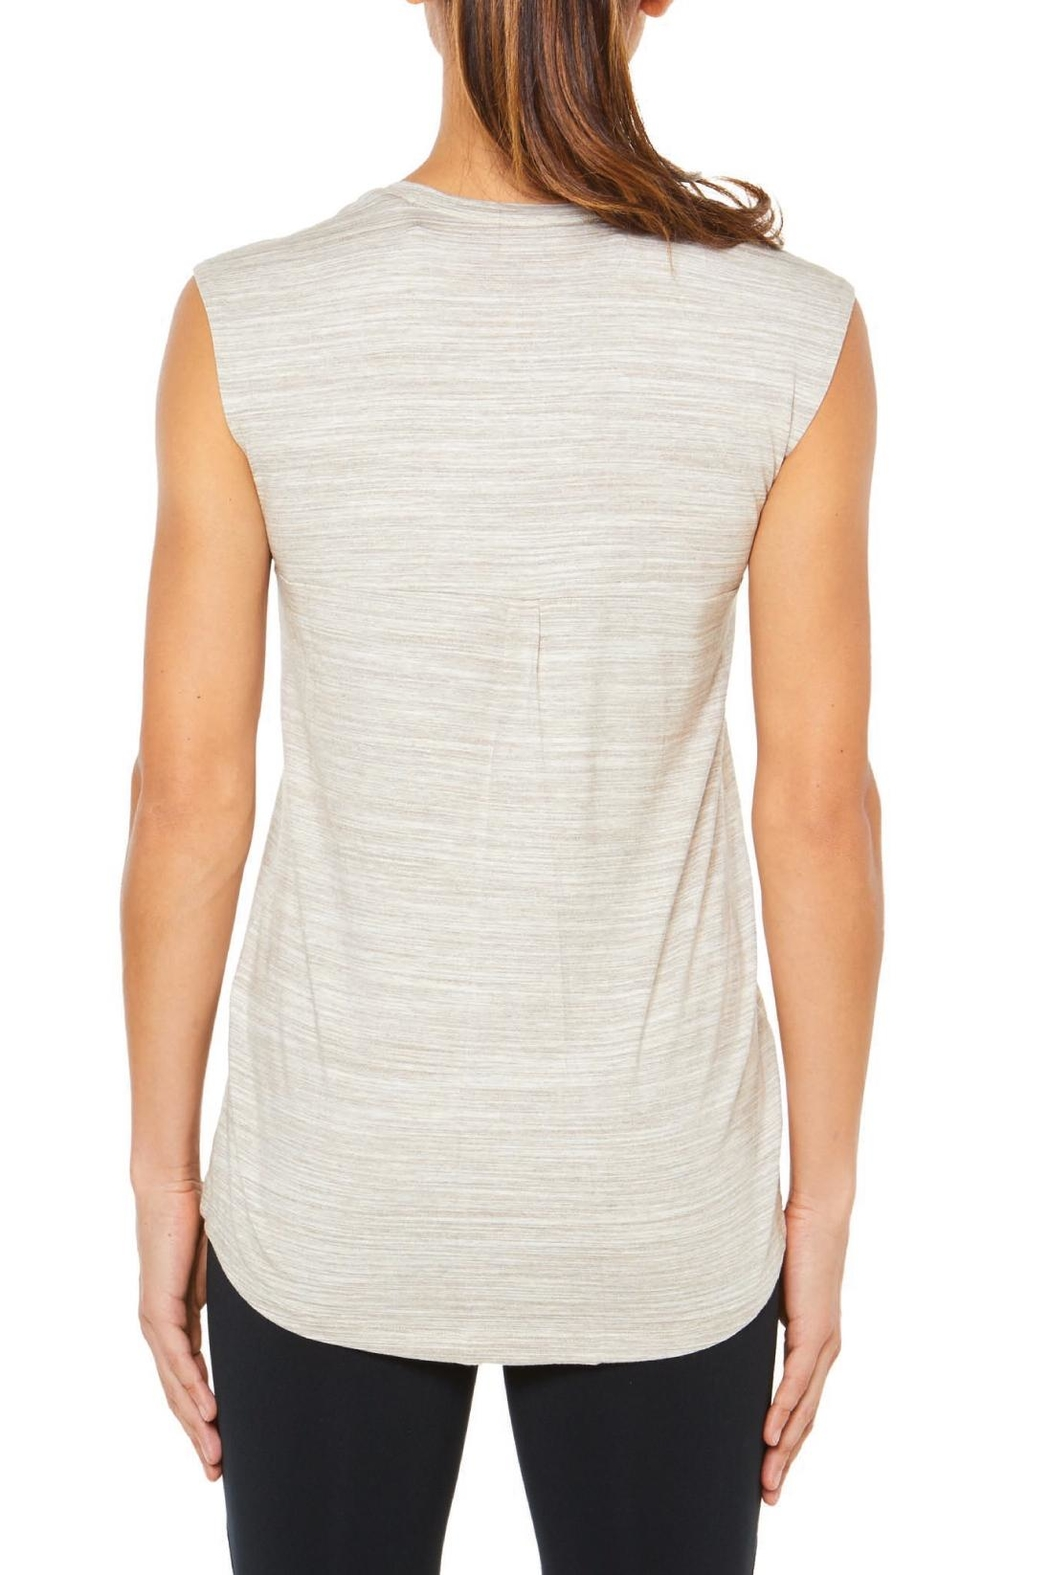 SHAPE Activewear Muscle Tank - Front Full Image